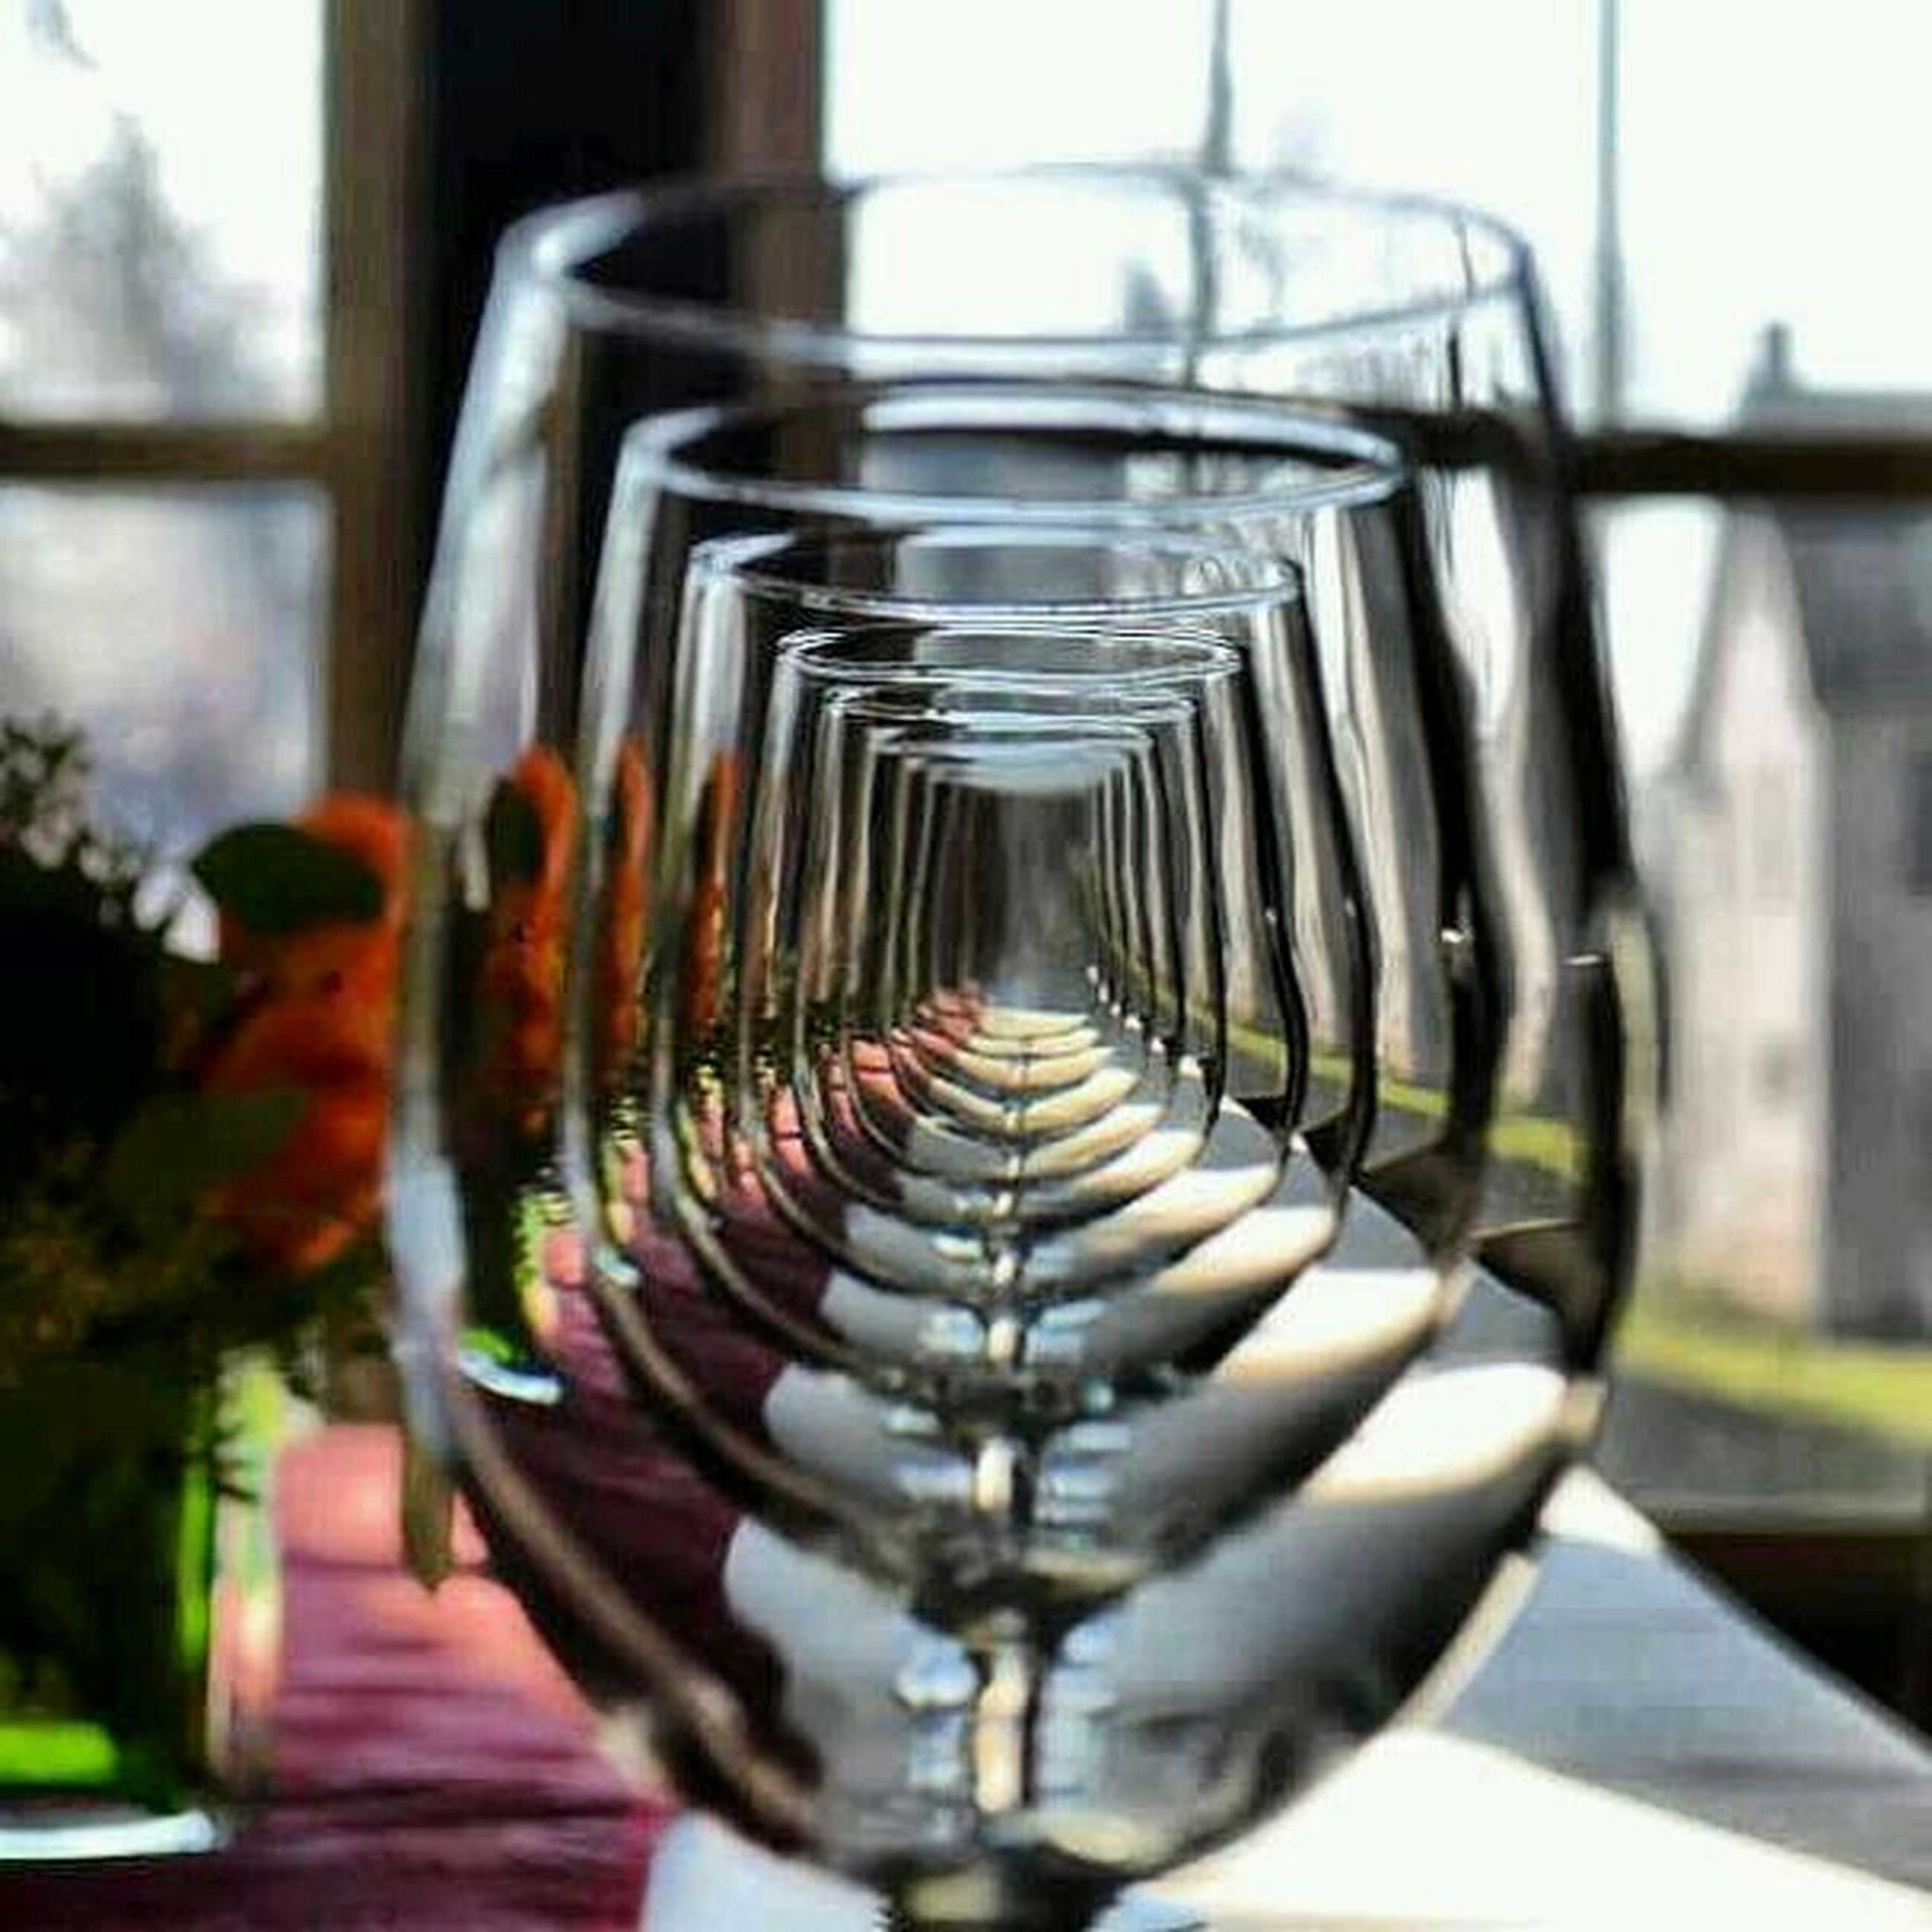 indoors, in a row, focus on foreground, metal, close-up, glass - material, repetition, transparent, hanging, pattern, selective focus, reflection, arrangement, diminishing perspective, empty, railing, no people, day, still life, table